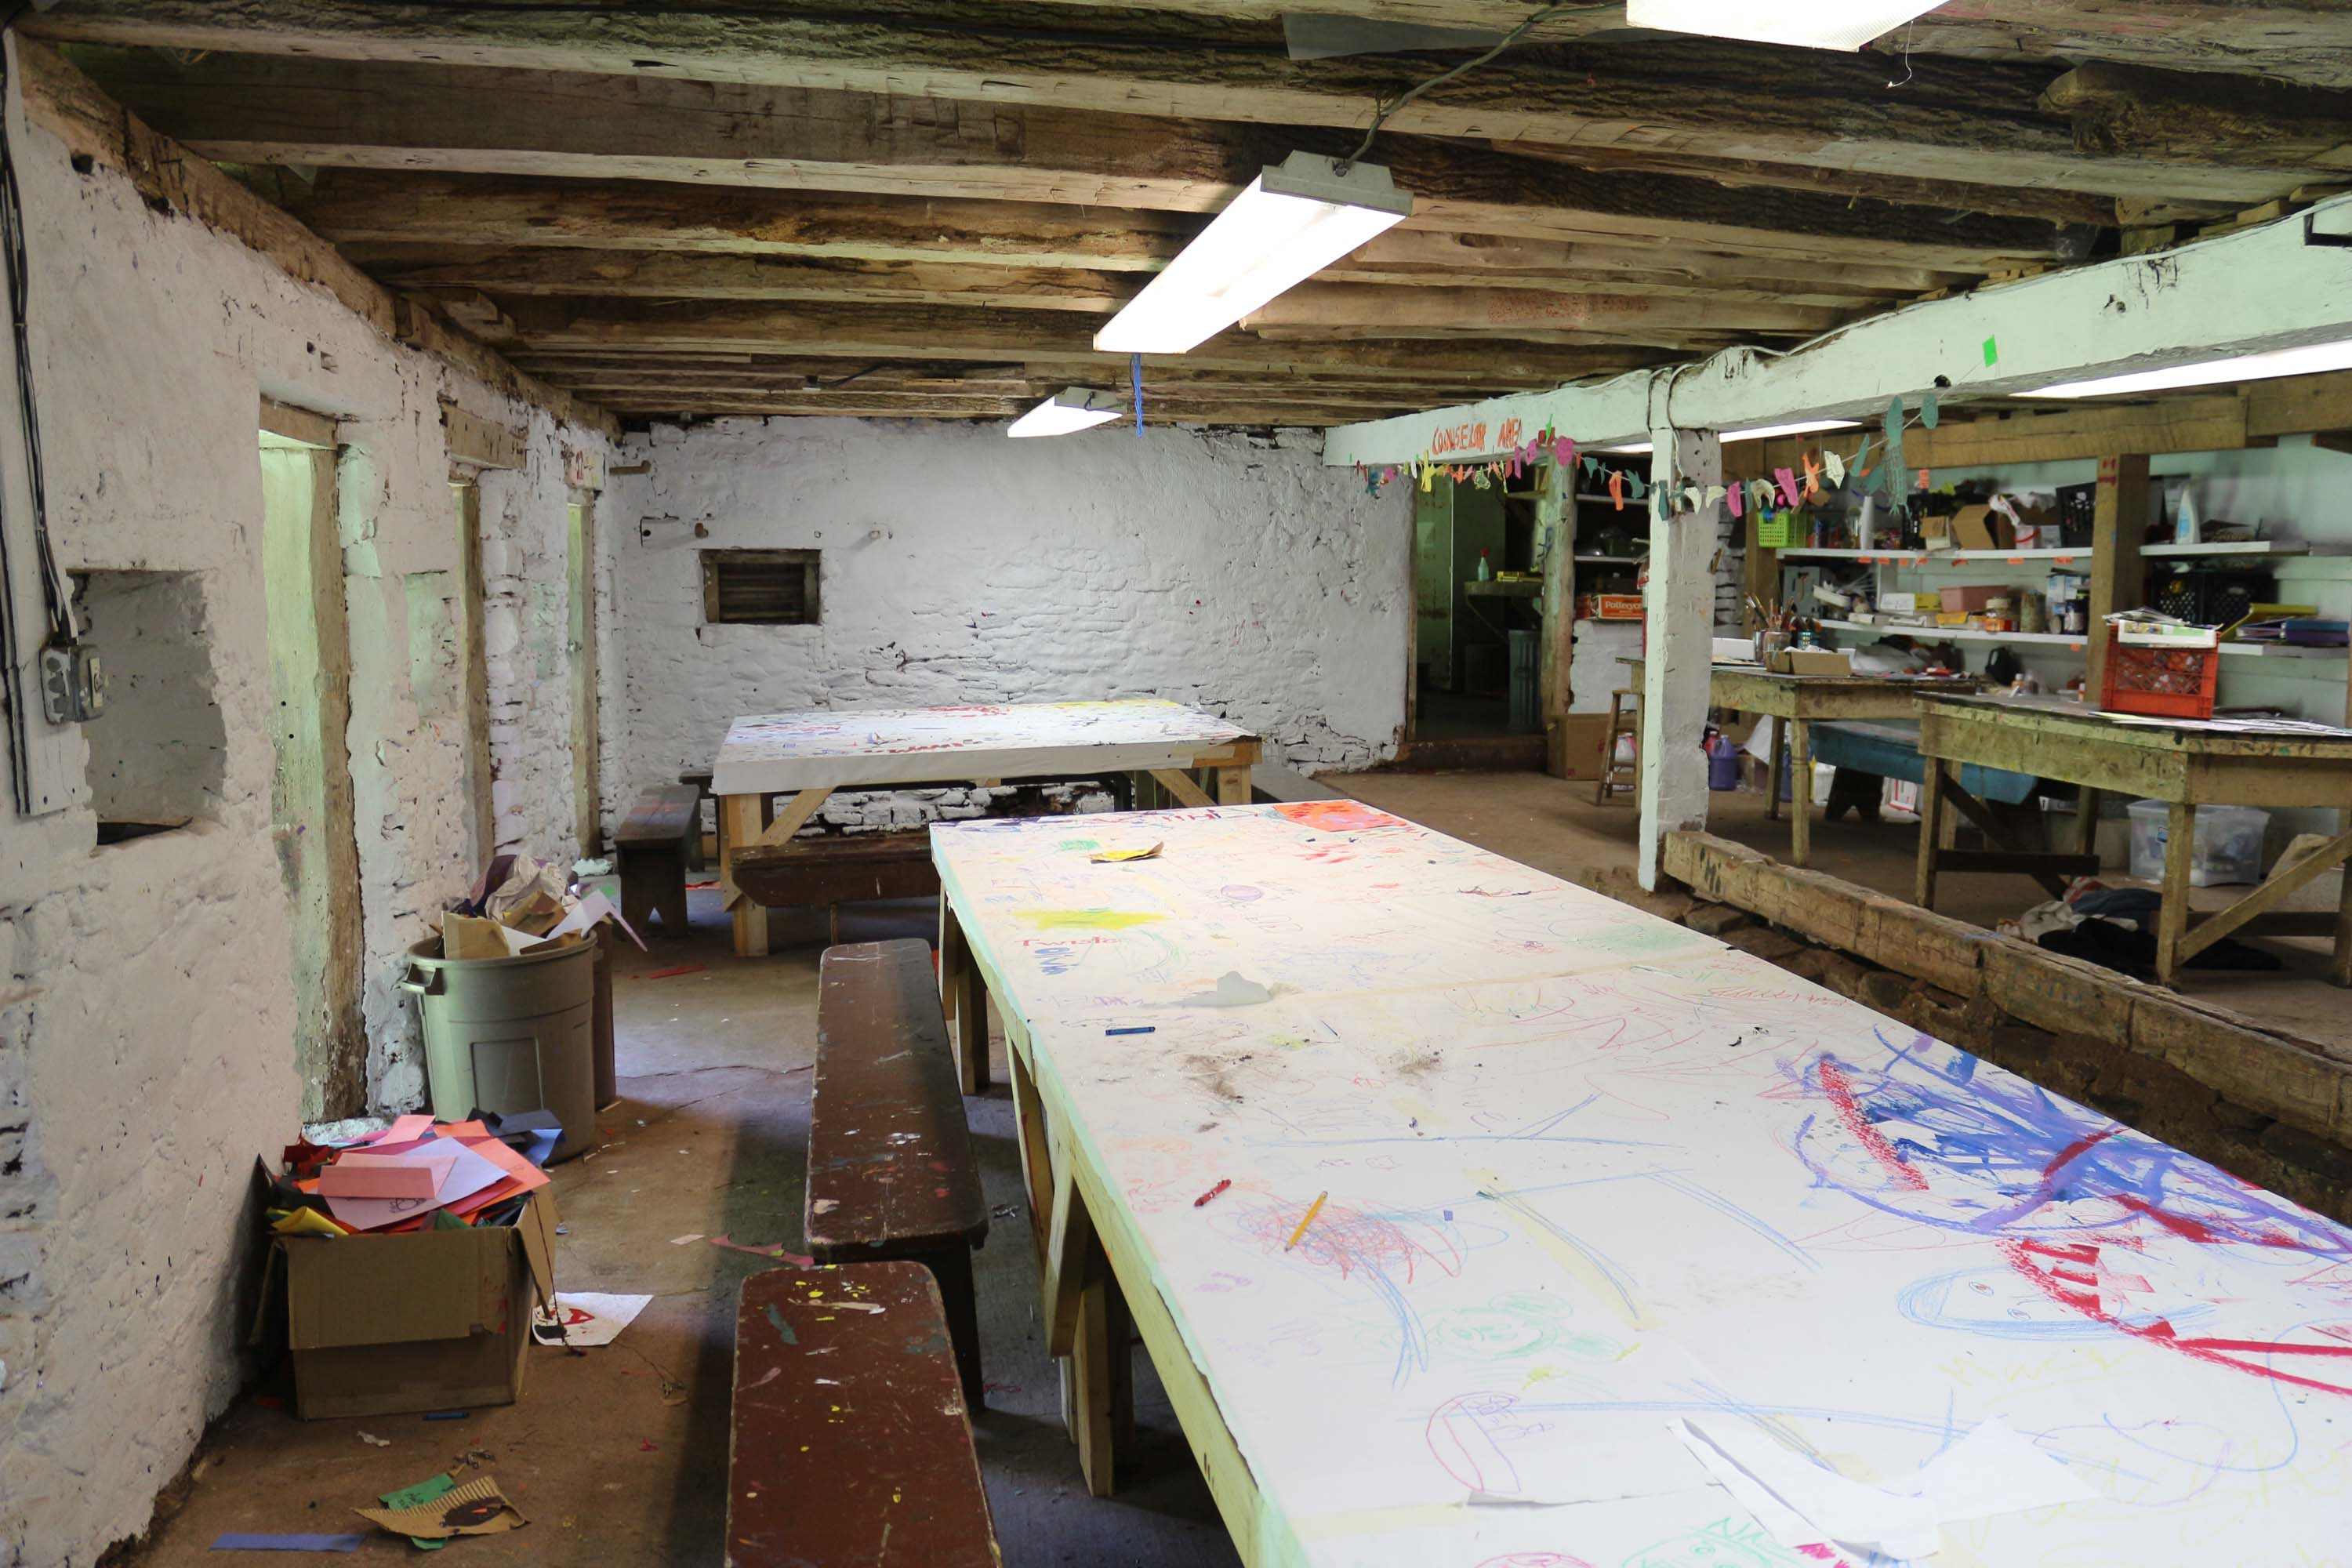 Located in the basement of our barn, the Arts and Crafts area is nice and cool on hot days, and is a great place to get creative.